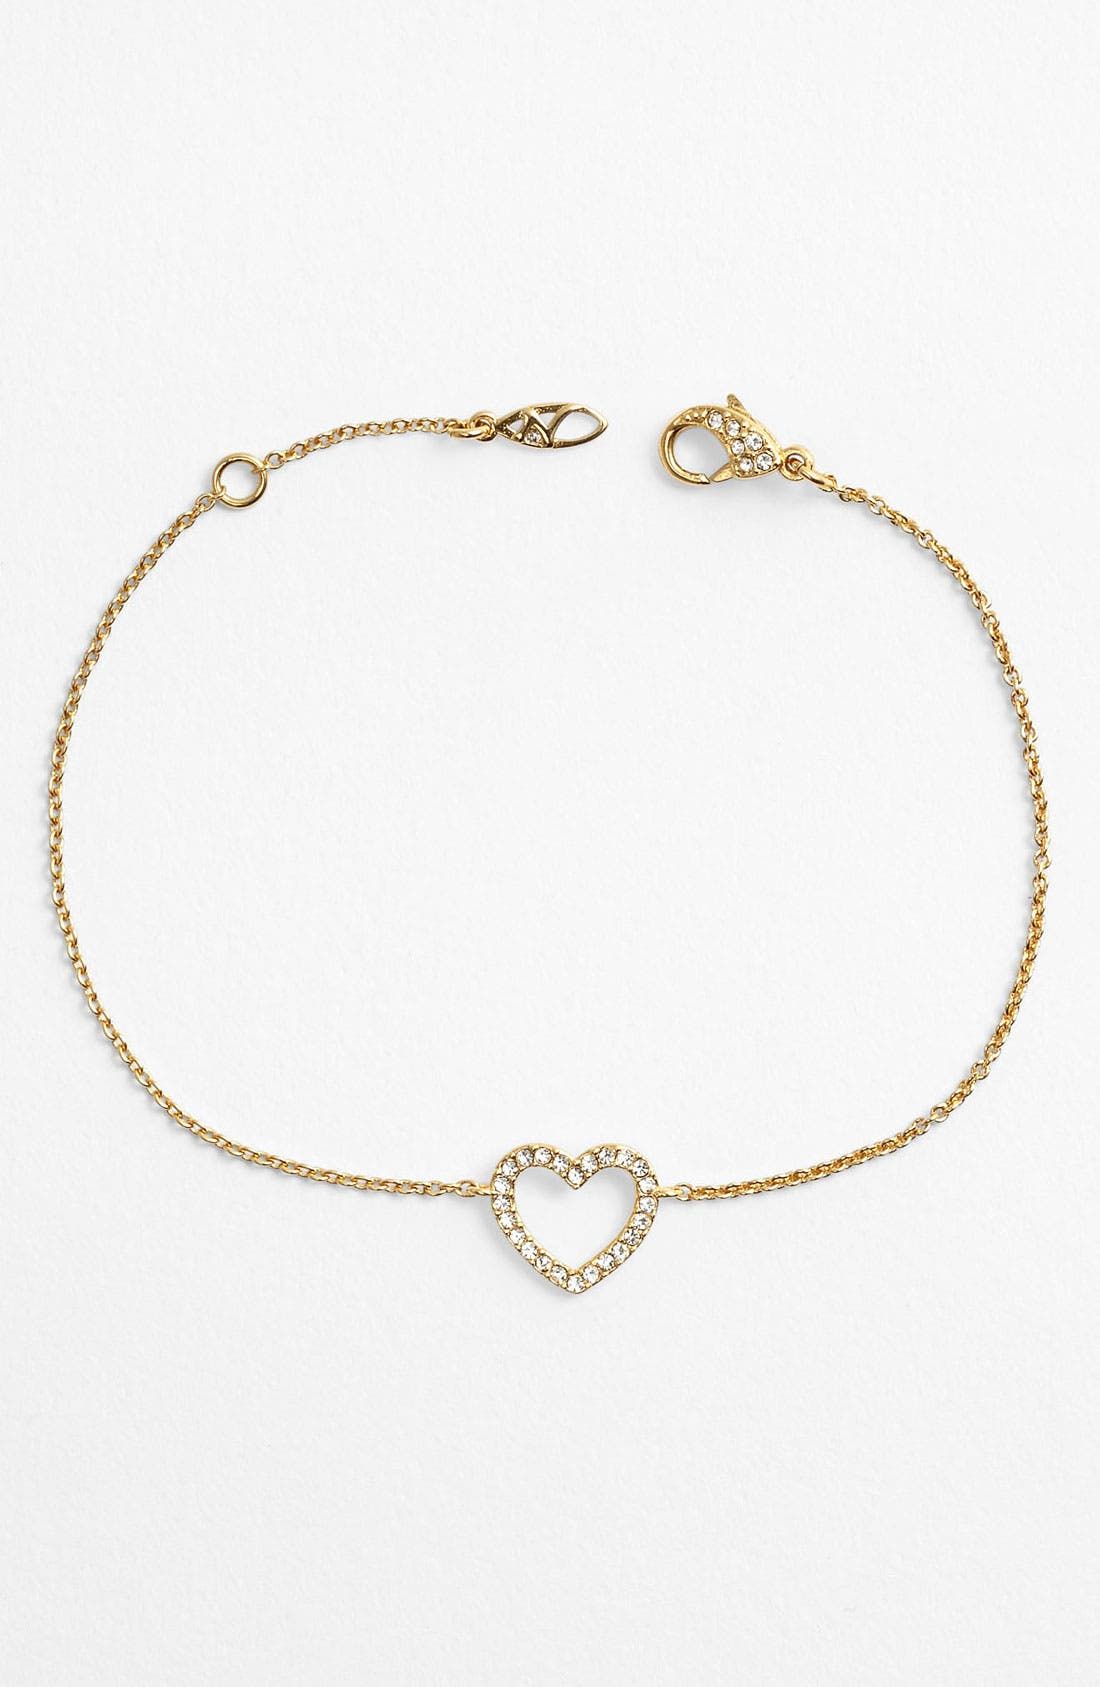 Alternate Image 1 Selected - Nadri Heart Station Bracelet (Nordstrom Exclusive)